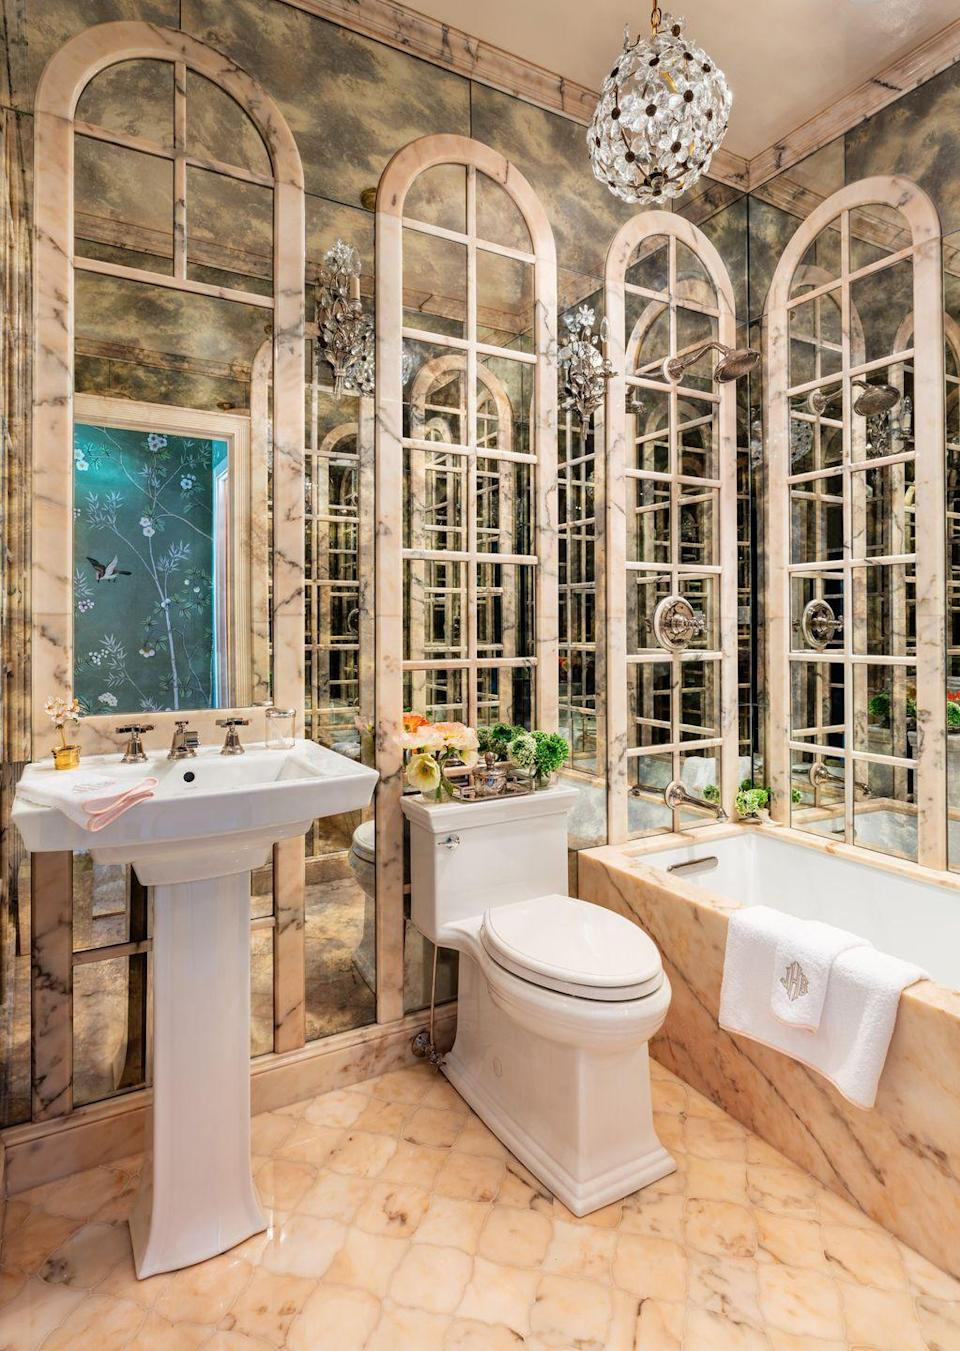 <p>Watch out, Versailles: There's a new hall of mirrors in town. Bromley's brilliant, kaleidoscopic guest bath comes courtesy of antiqued mirror panes covering every wall, <strong>a dramatic effect that also makes the space appear much larger. </strong>The floors, tub, and trim, in Rosa Portugal marble, make the case for bringing back the monochrome pink bathrooms of the 70s and 80s. </p>